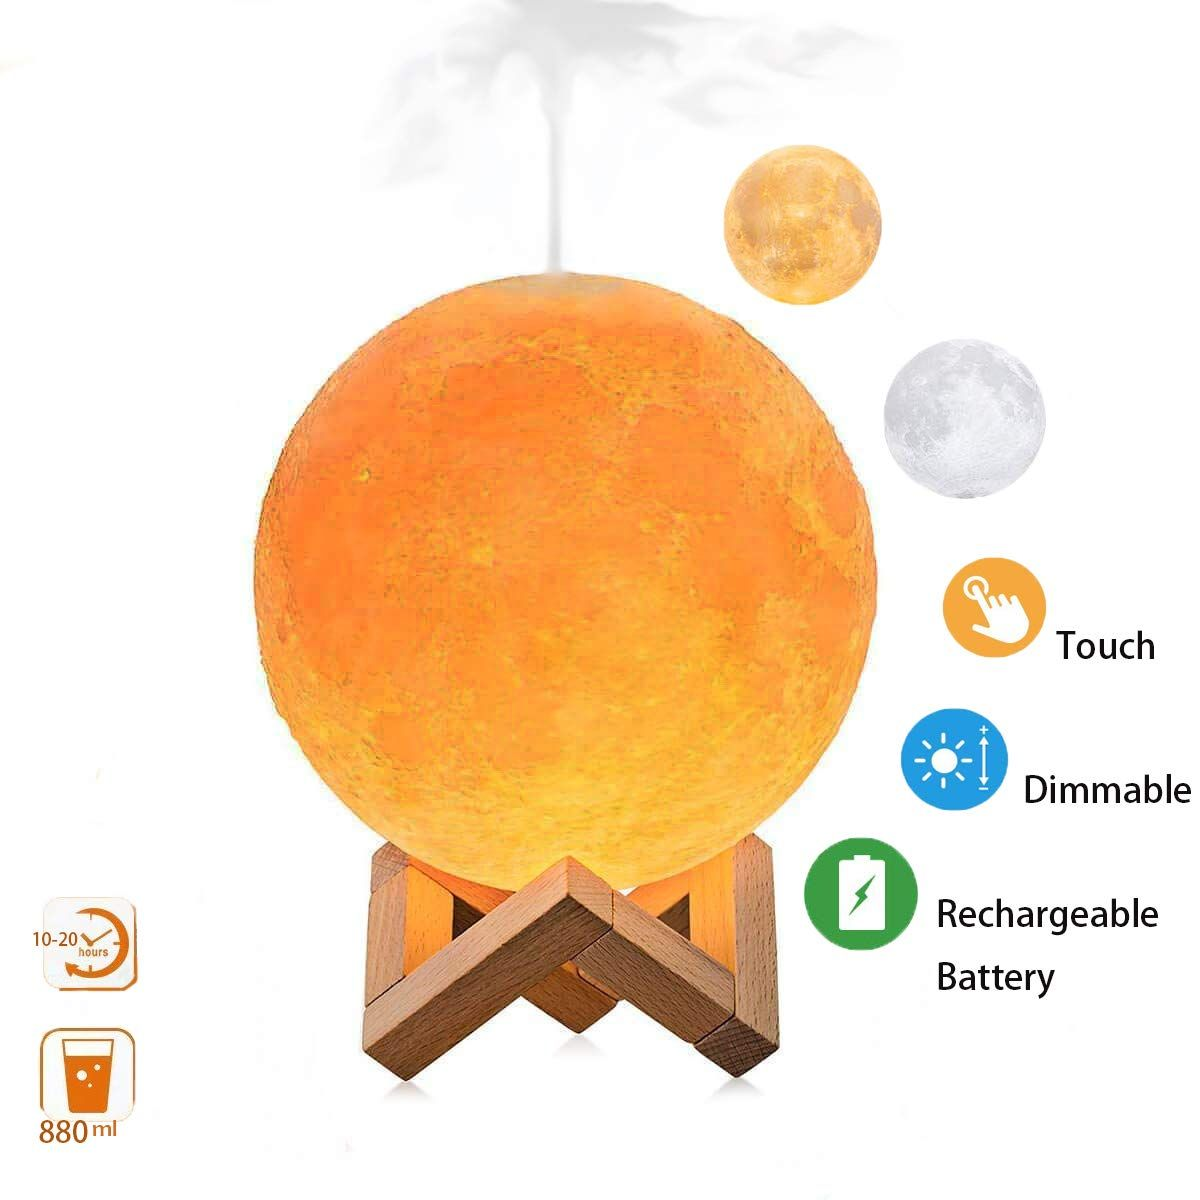 50 Off Upgraded Version Moon Lamp Humidifier With 3 Colors Budget Nerds Deals Onlineshopping Amazondeals Diffuser Humidifier Air Humidifier